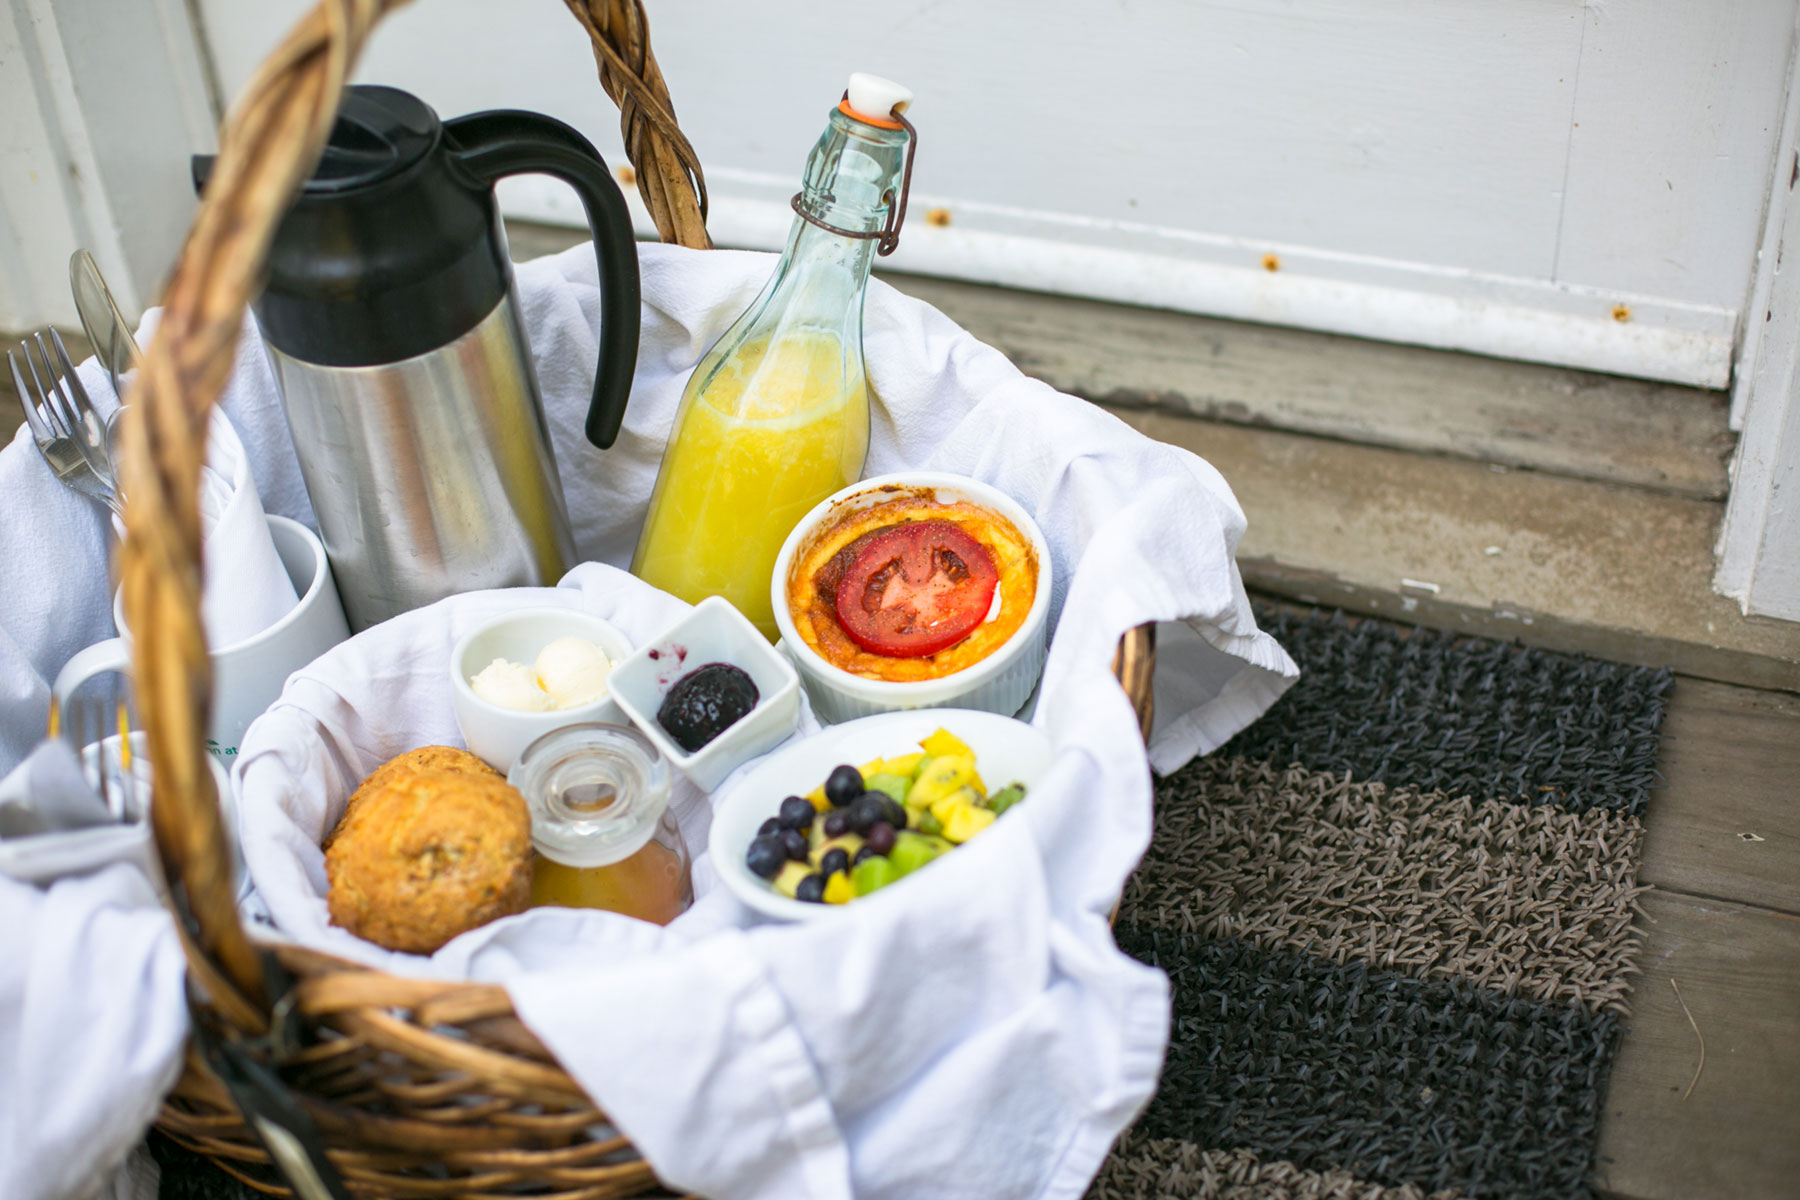 a basket of breakfast: egg soufflé, orange juice, muffins, cut fruit, and coffee